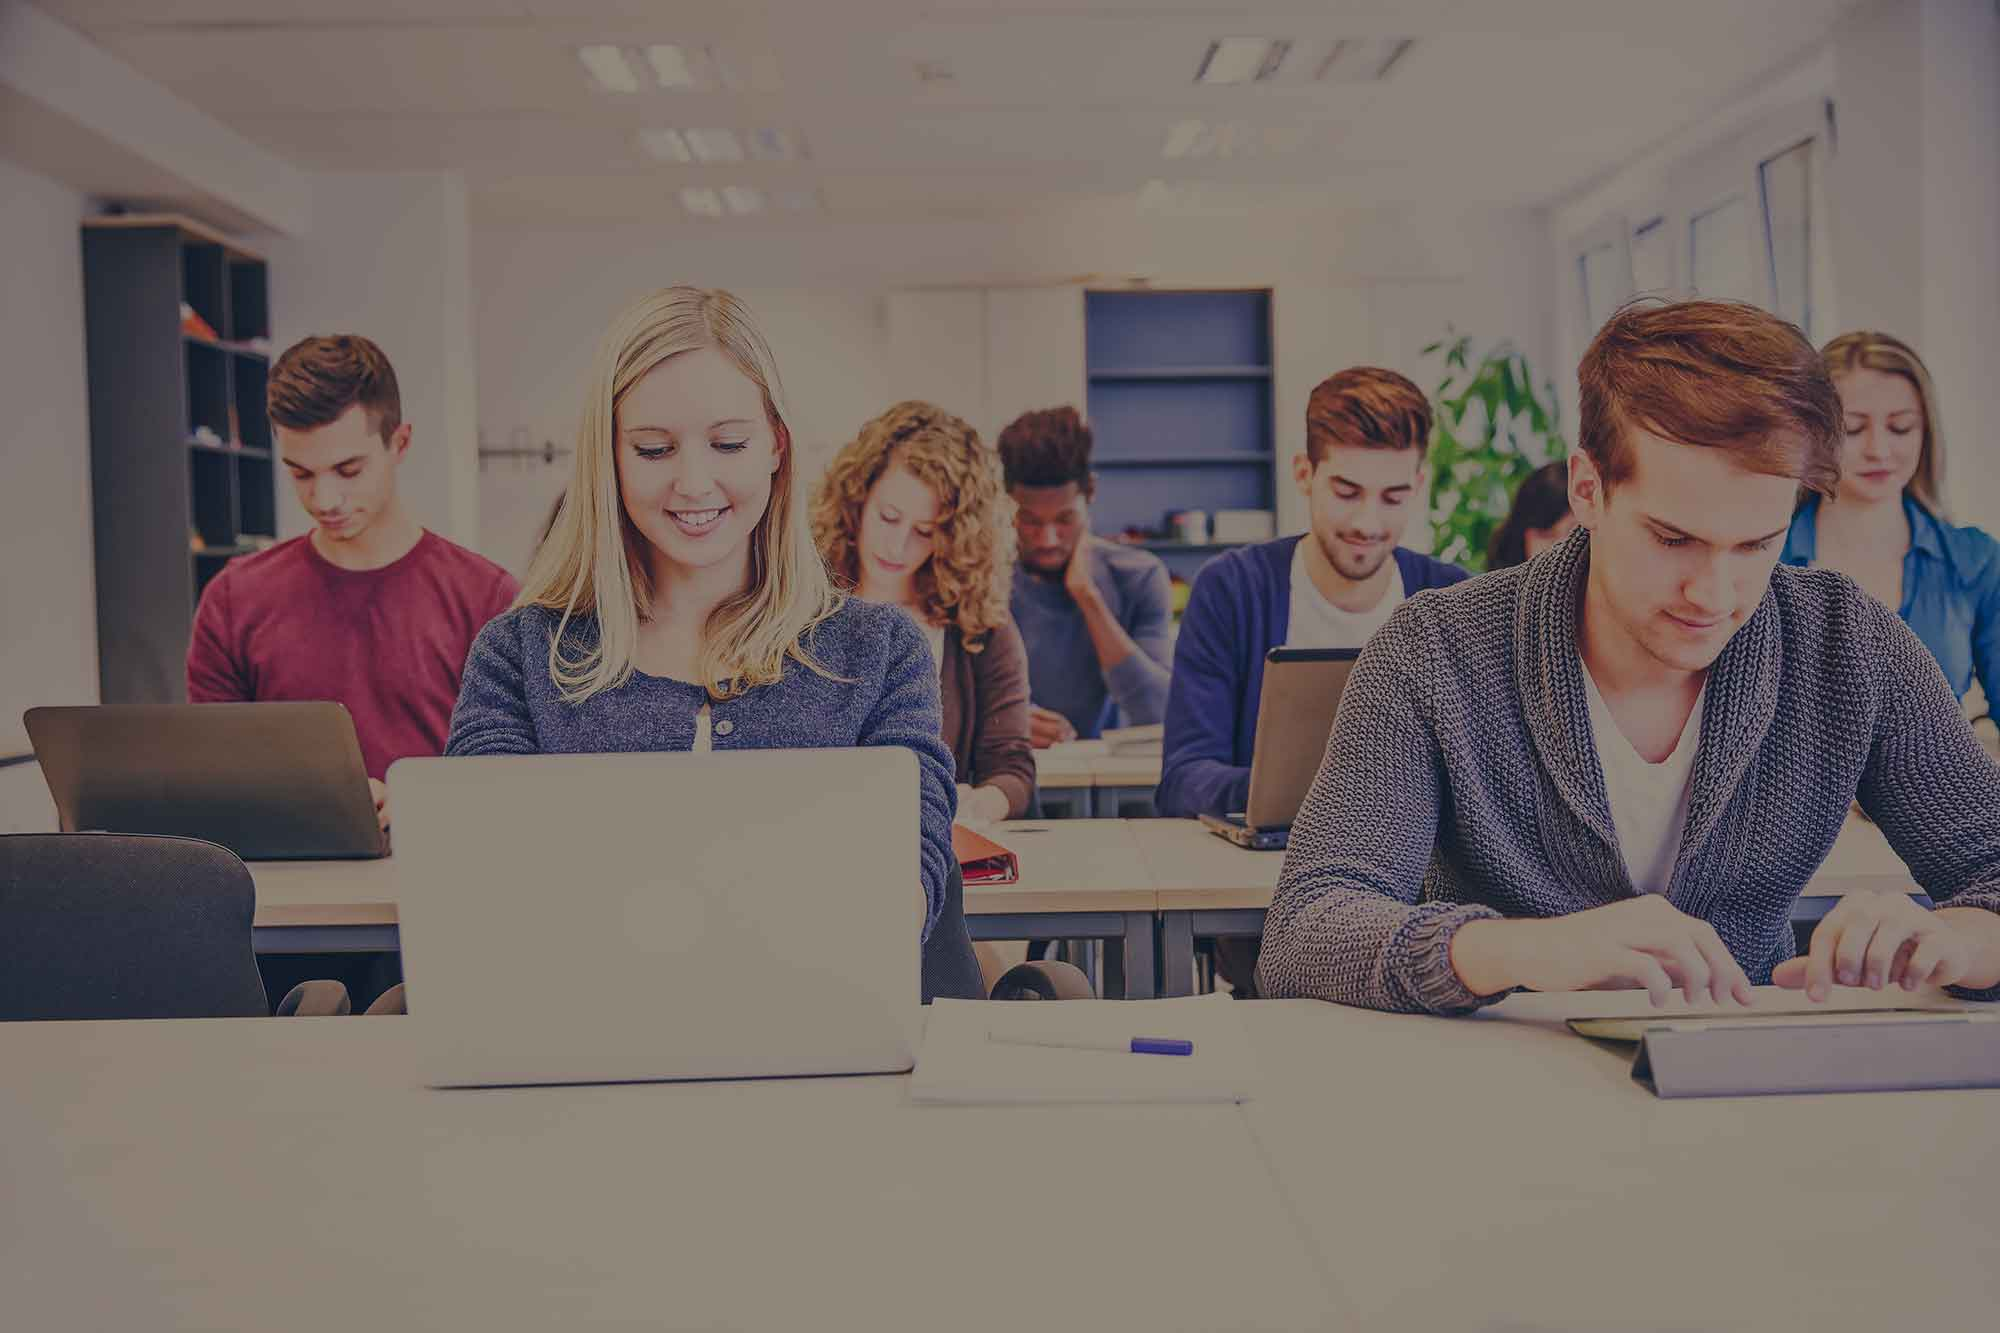 How Will Technology Transform Higher Education Over the Next 5 Years?